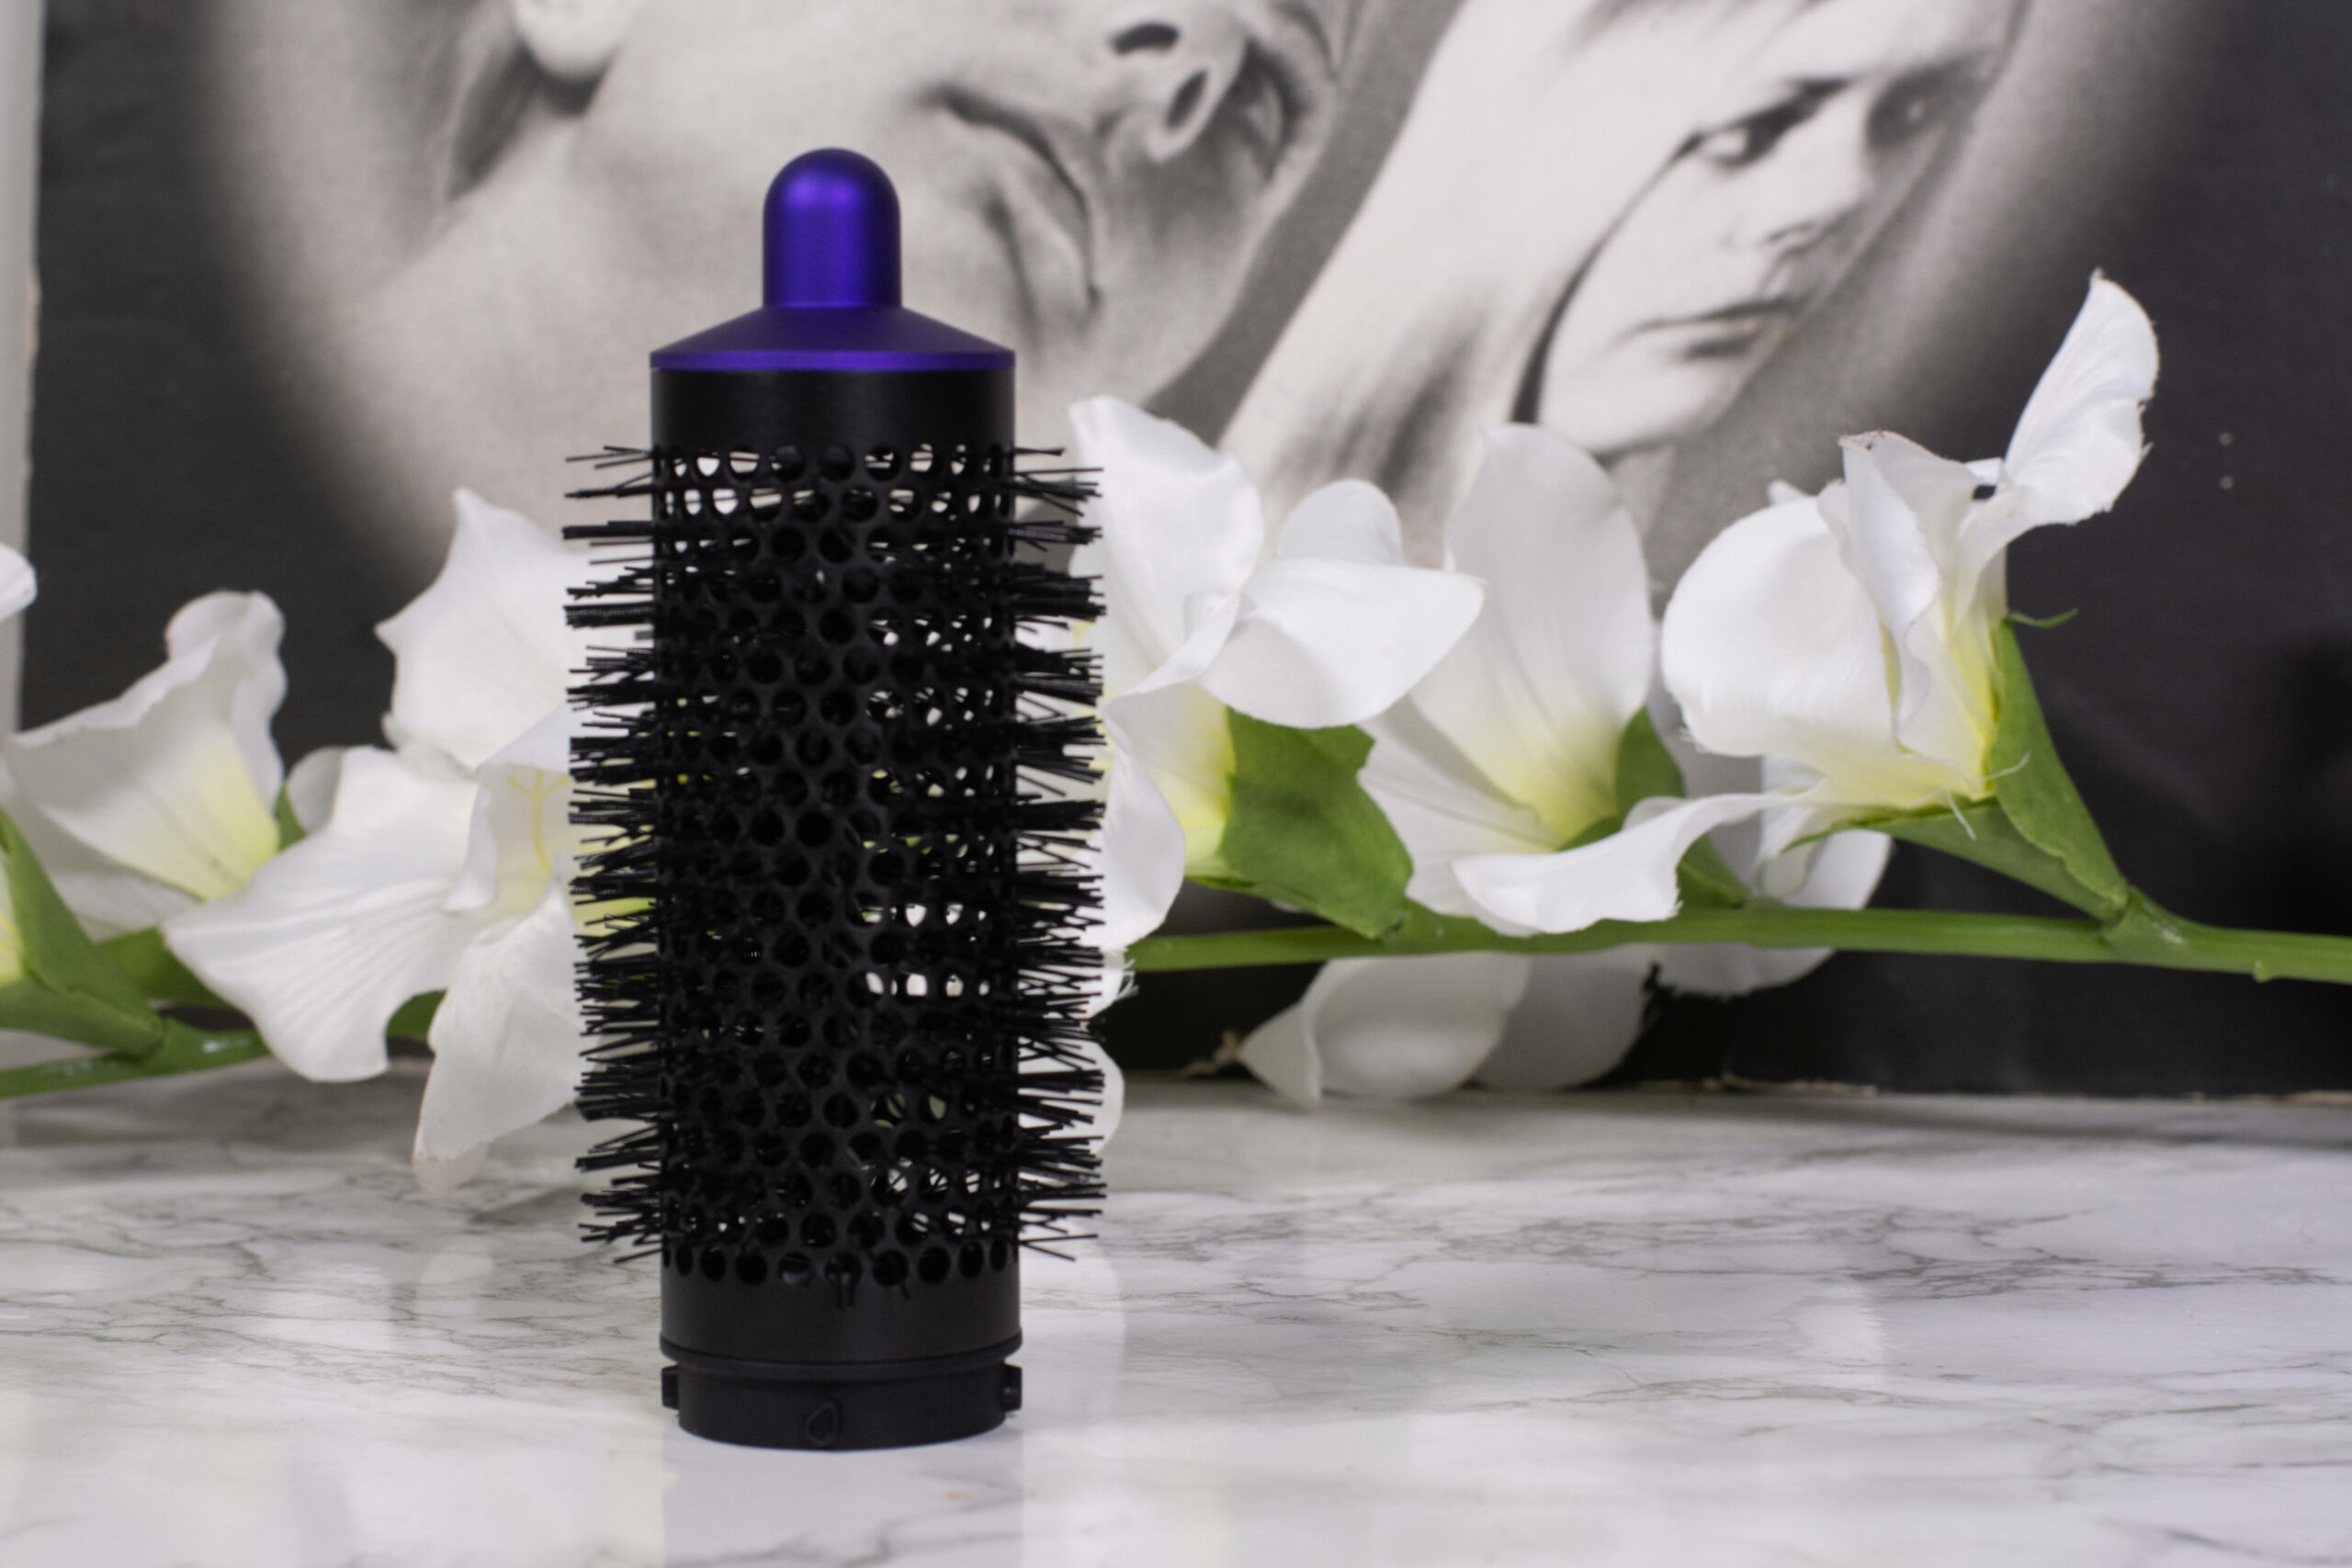 The round brush attachment of the Dyson AirWrap Hair Styler